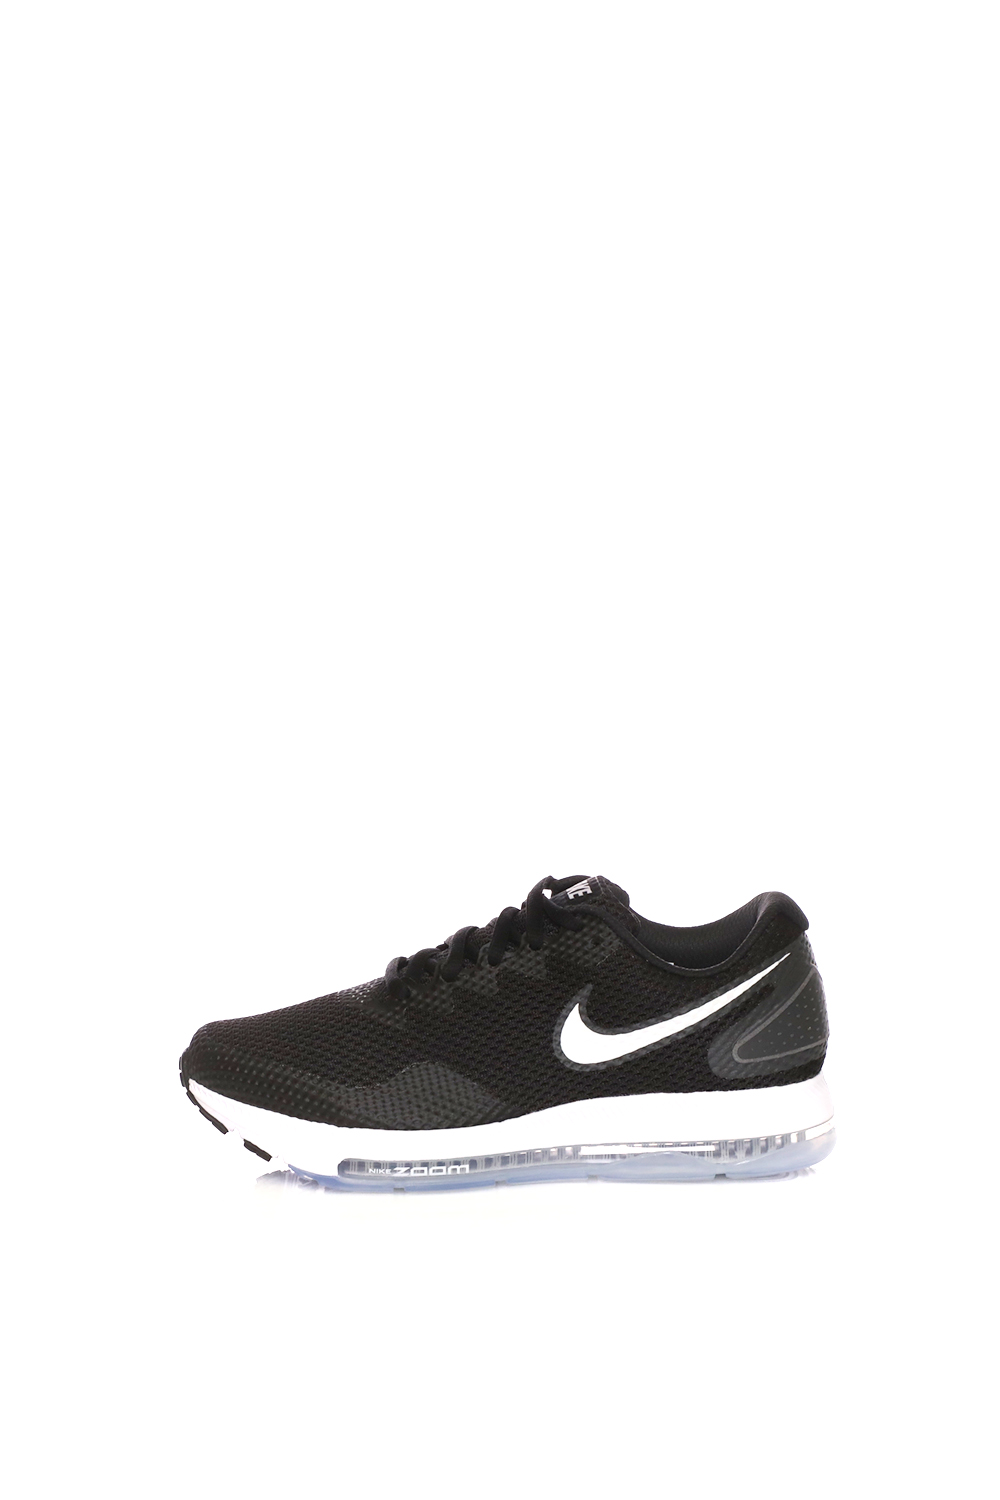 NIKE - Γυναικεία παπούτσια τρεξίματος NIKE ZOOM ALL OUT LOW 2 μαύρα γυναικεία παπούτσια αθλητικά running